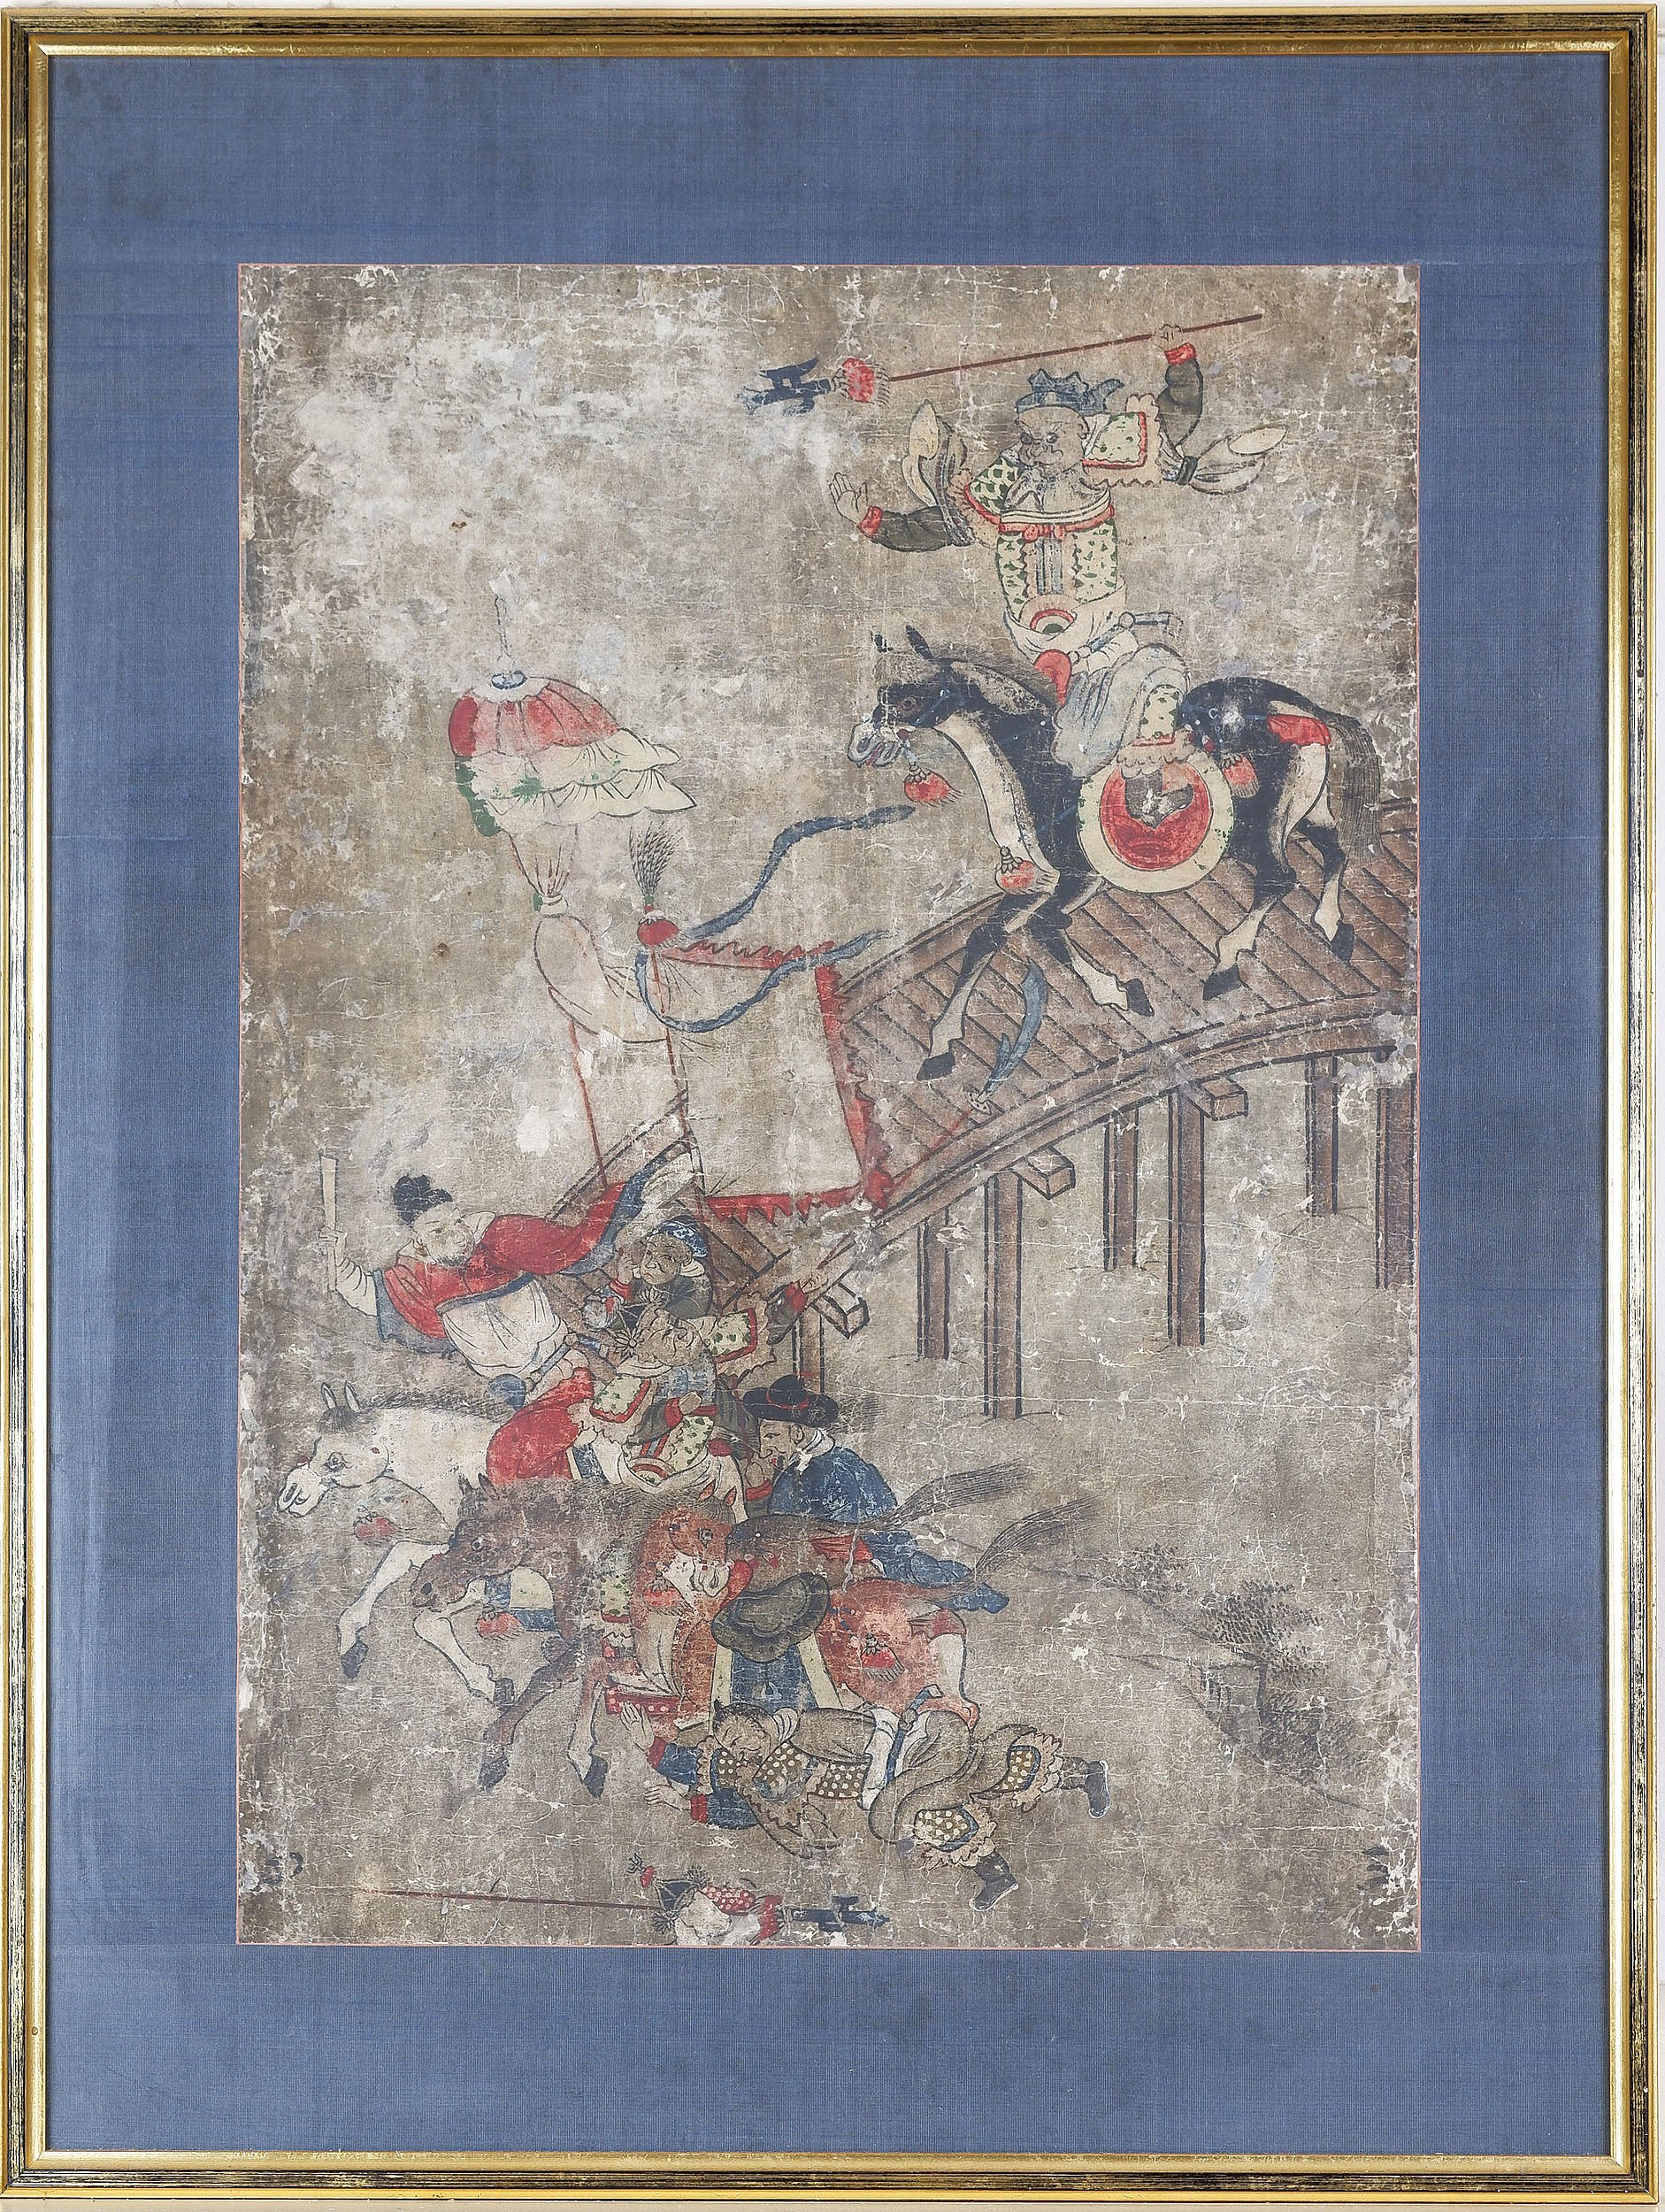 'Korean Painting of Warriors on Horseback, Gouache and Ink on Paper, 19th Century or Earlier'